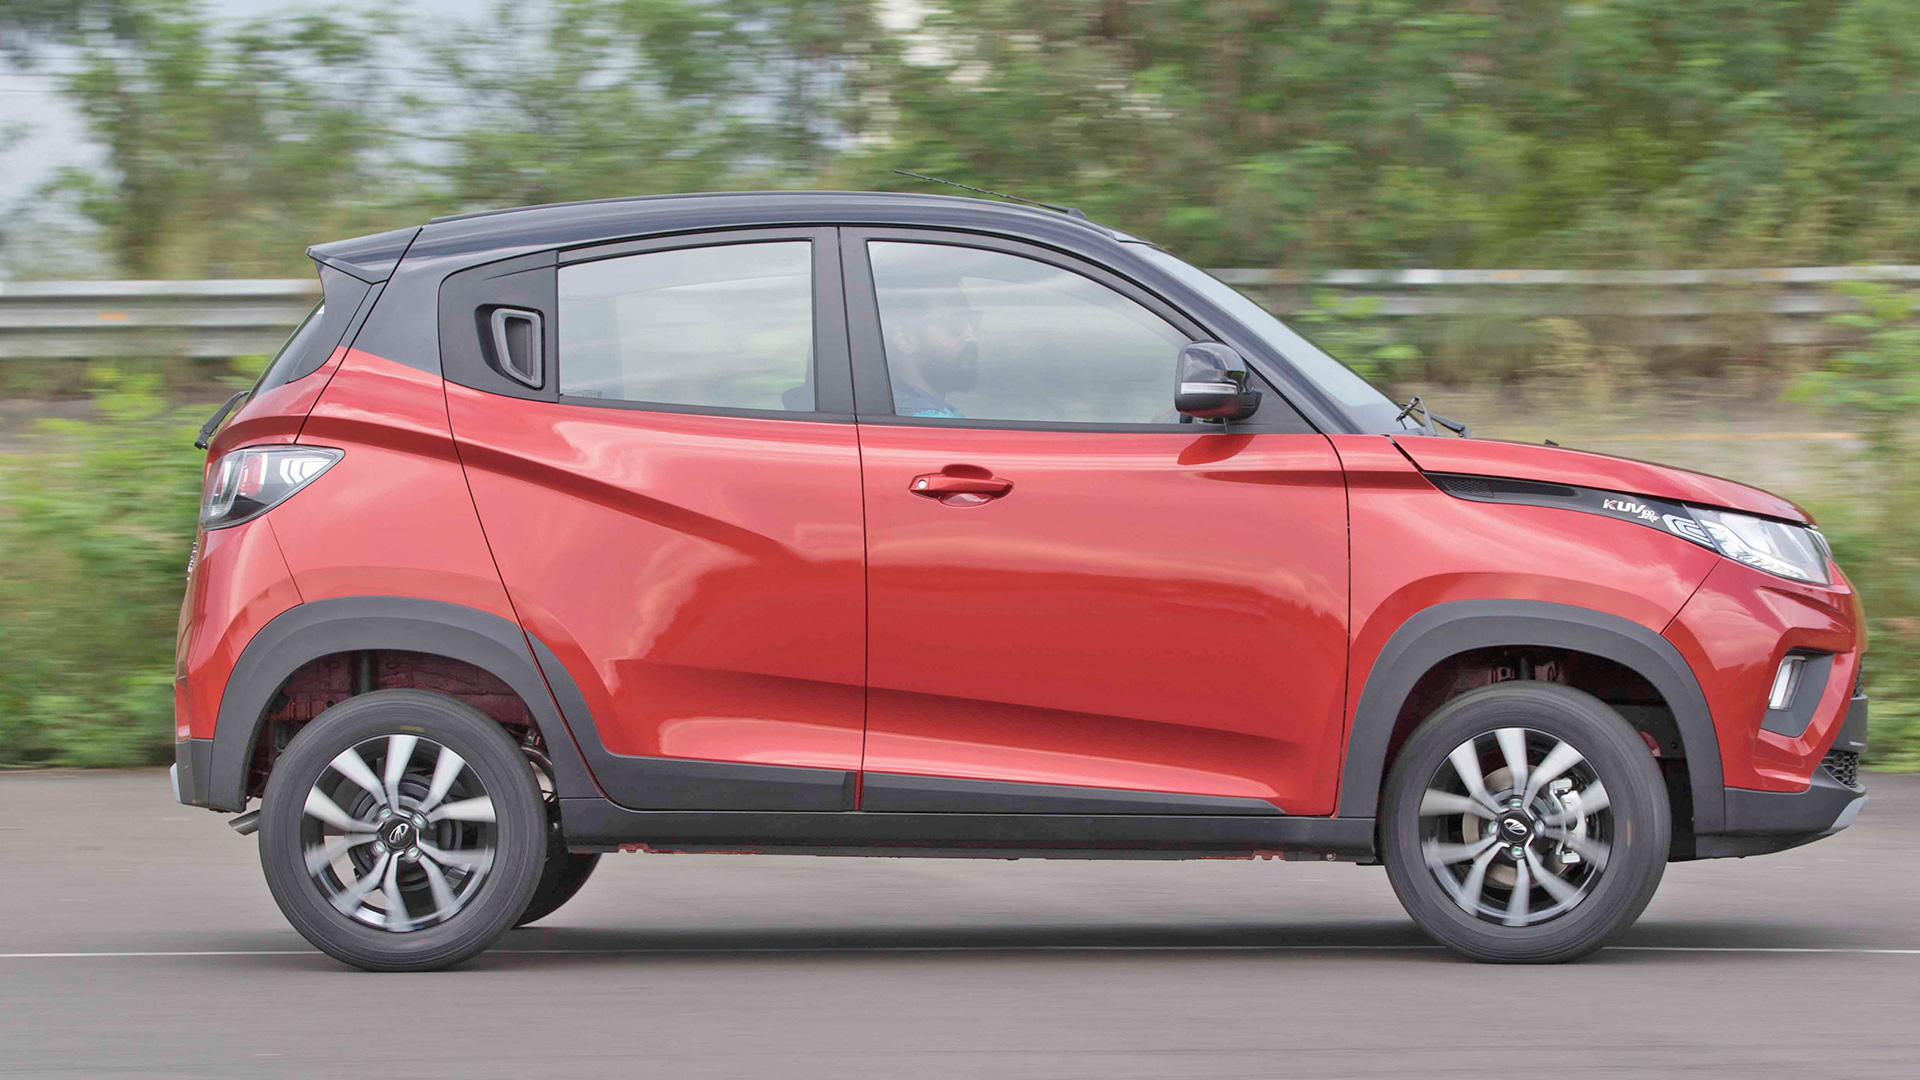 mahindra kuv 100 nxt 2017 k6 diesel price mileage reviews specification gallery overdrive. Black Bedroom Furniture Sets. Home Design Ideas